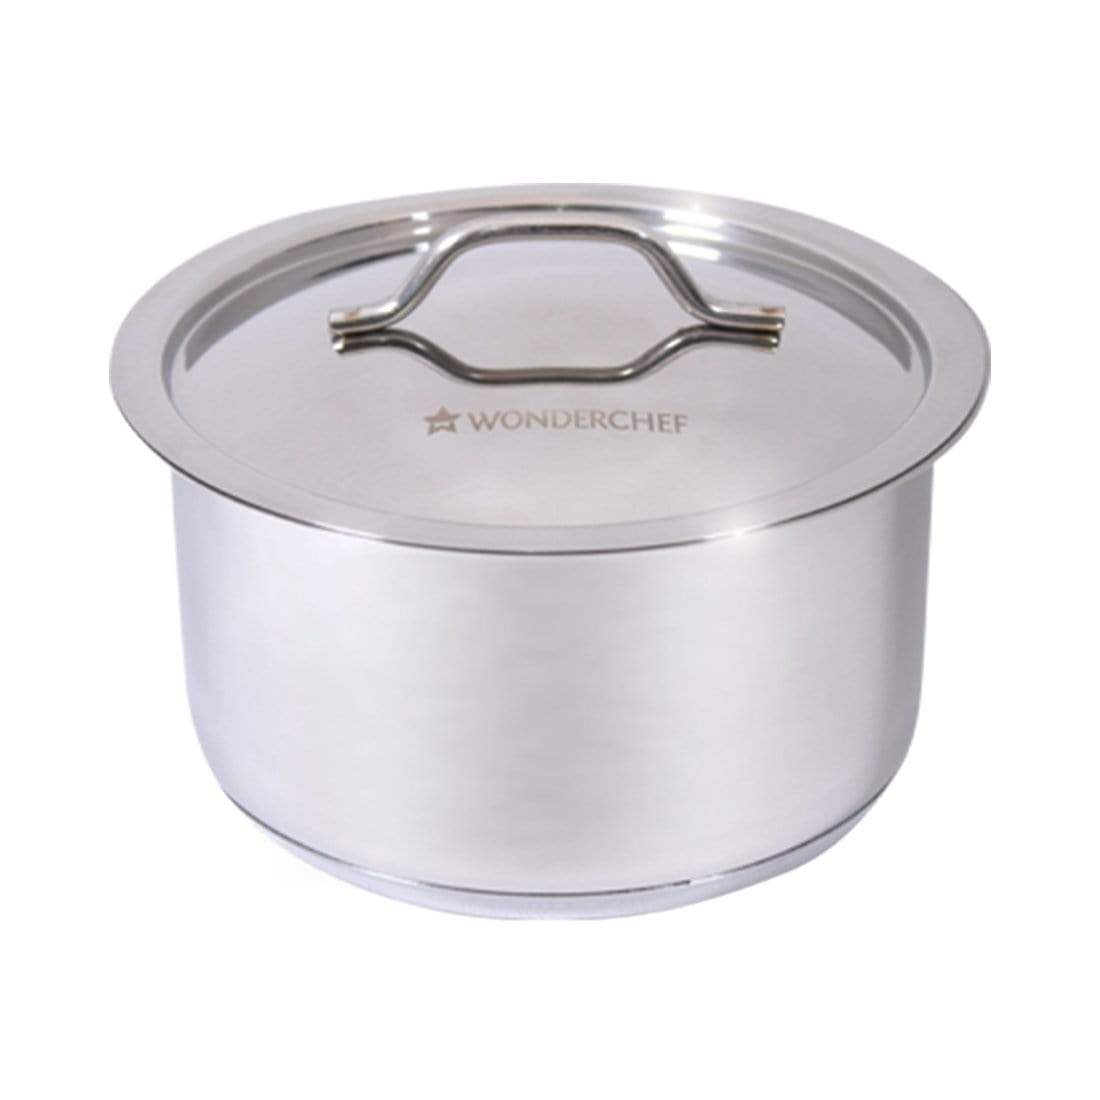 Stanton Stainless Steel Cooking Pot with Lid-16cm, 1.8L, 0.6mm